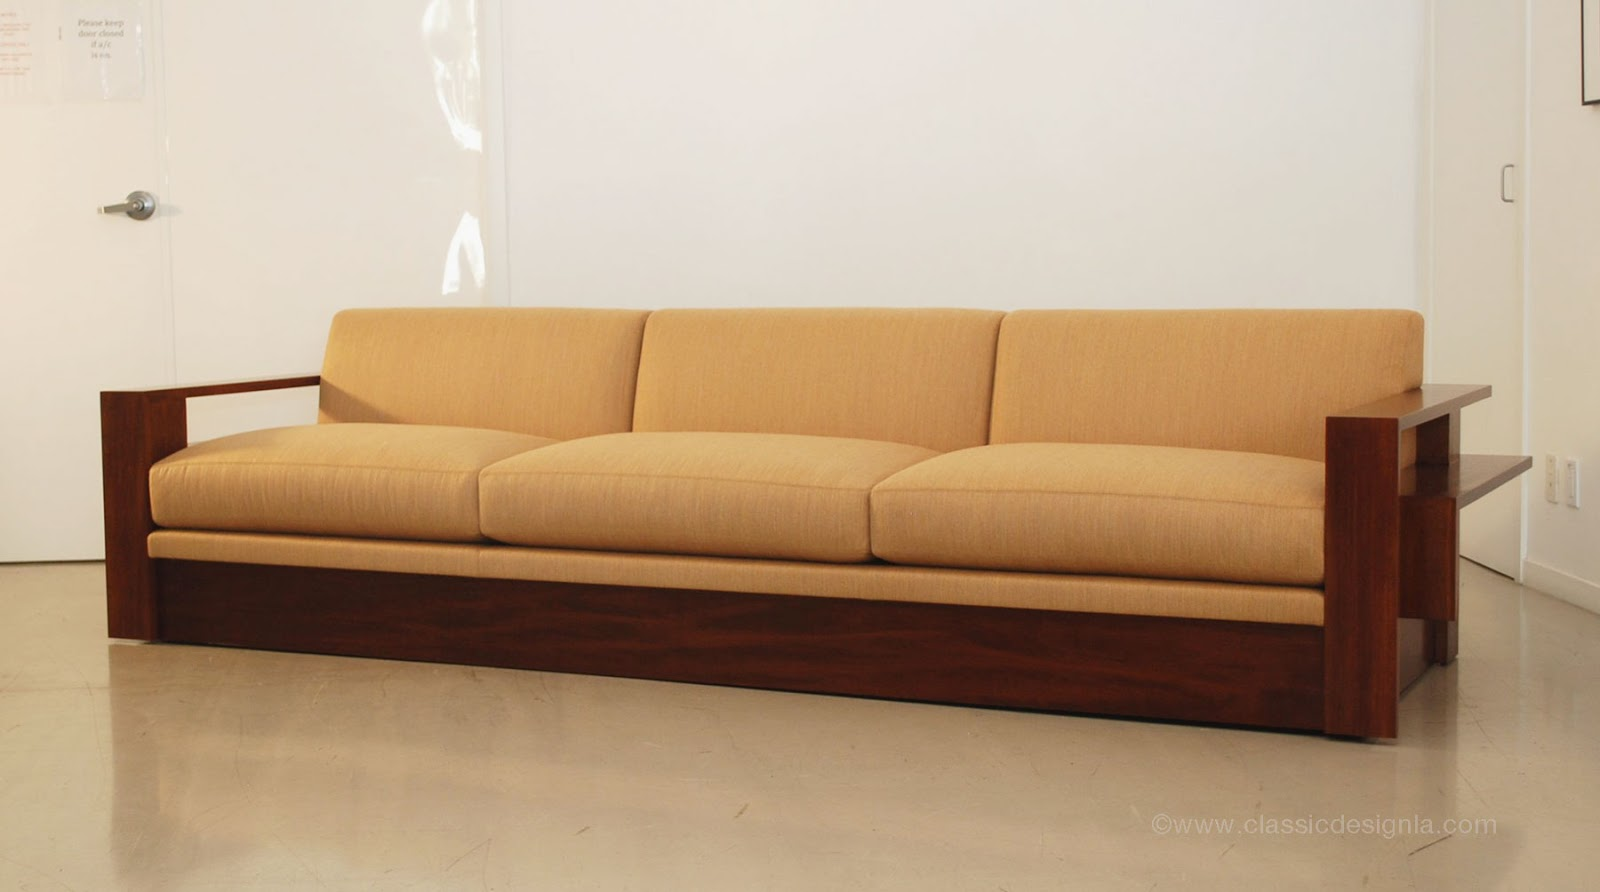 Wooden Sofa Classic Design Custom Wood Frame Sofa